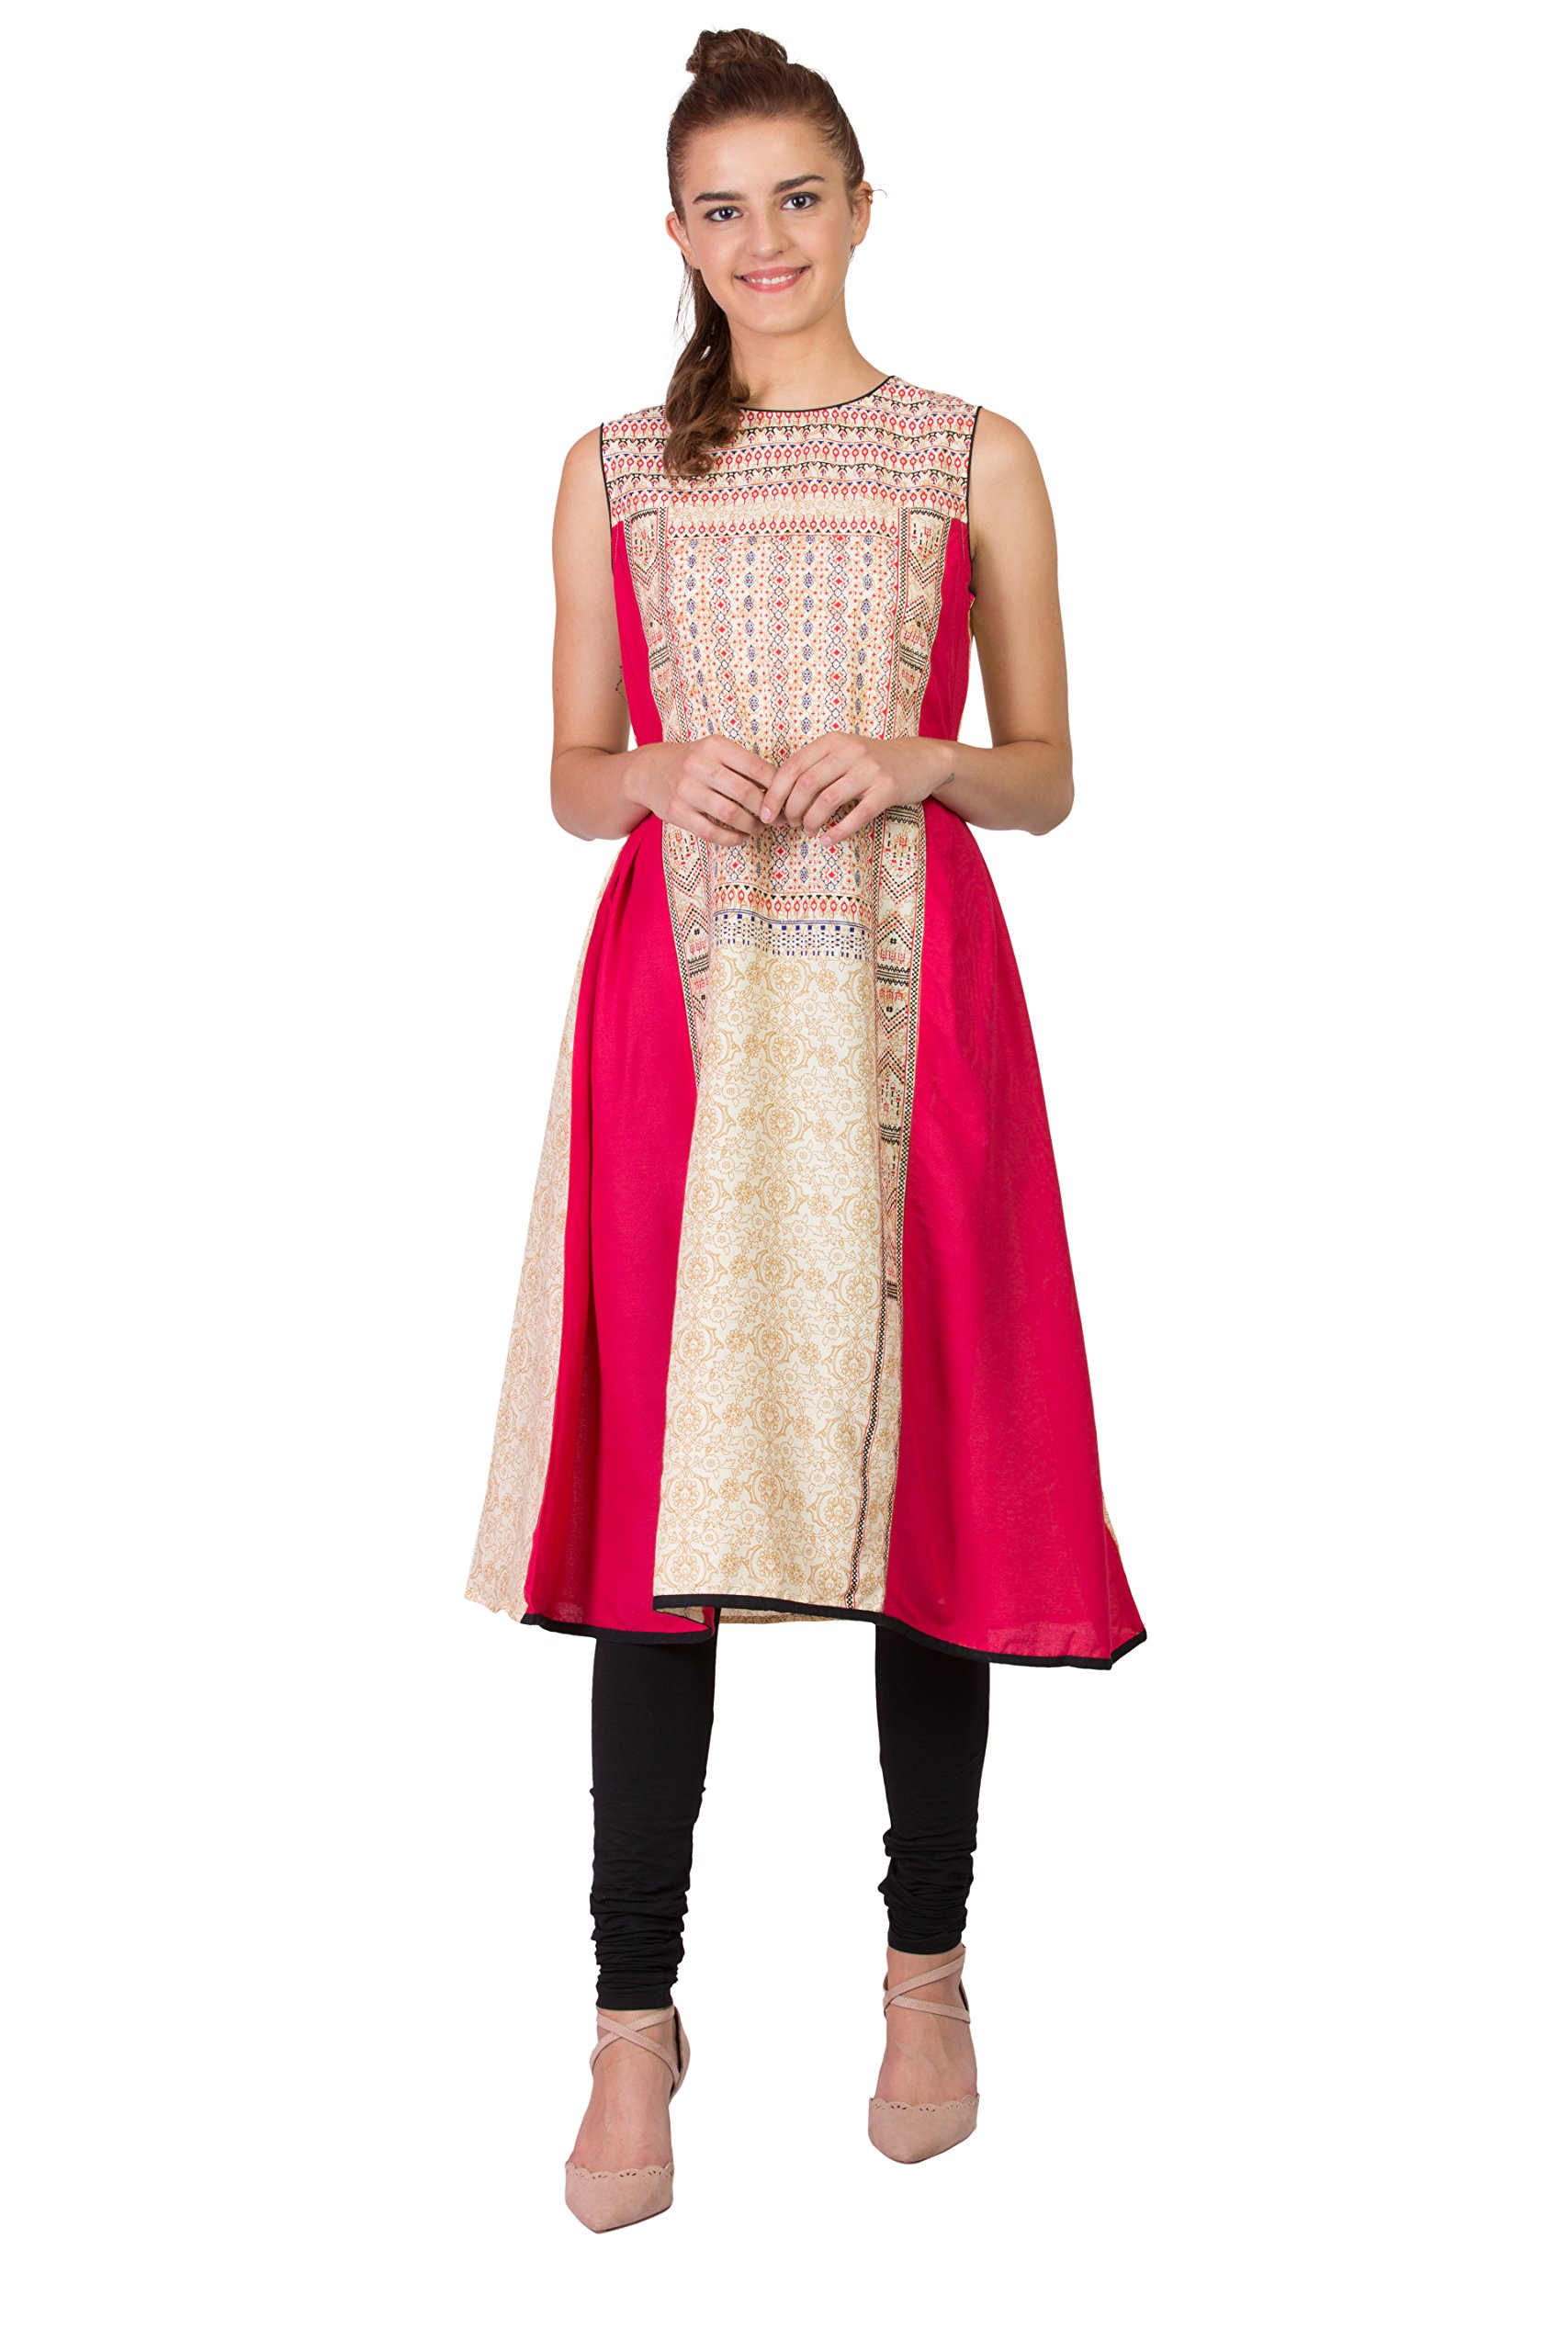 SABHYATA Women Kurta Designer Ethnic Long Dress Casual Tunic Kurti for Women Ladies Partywear Material 100% Pure Rayon Neck Type Round Neck Medium Beige